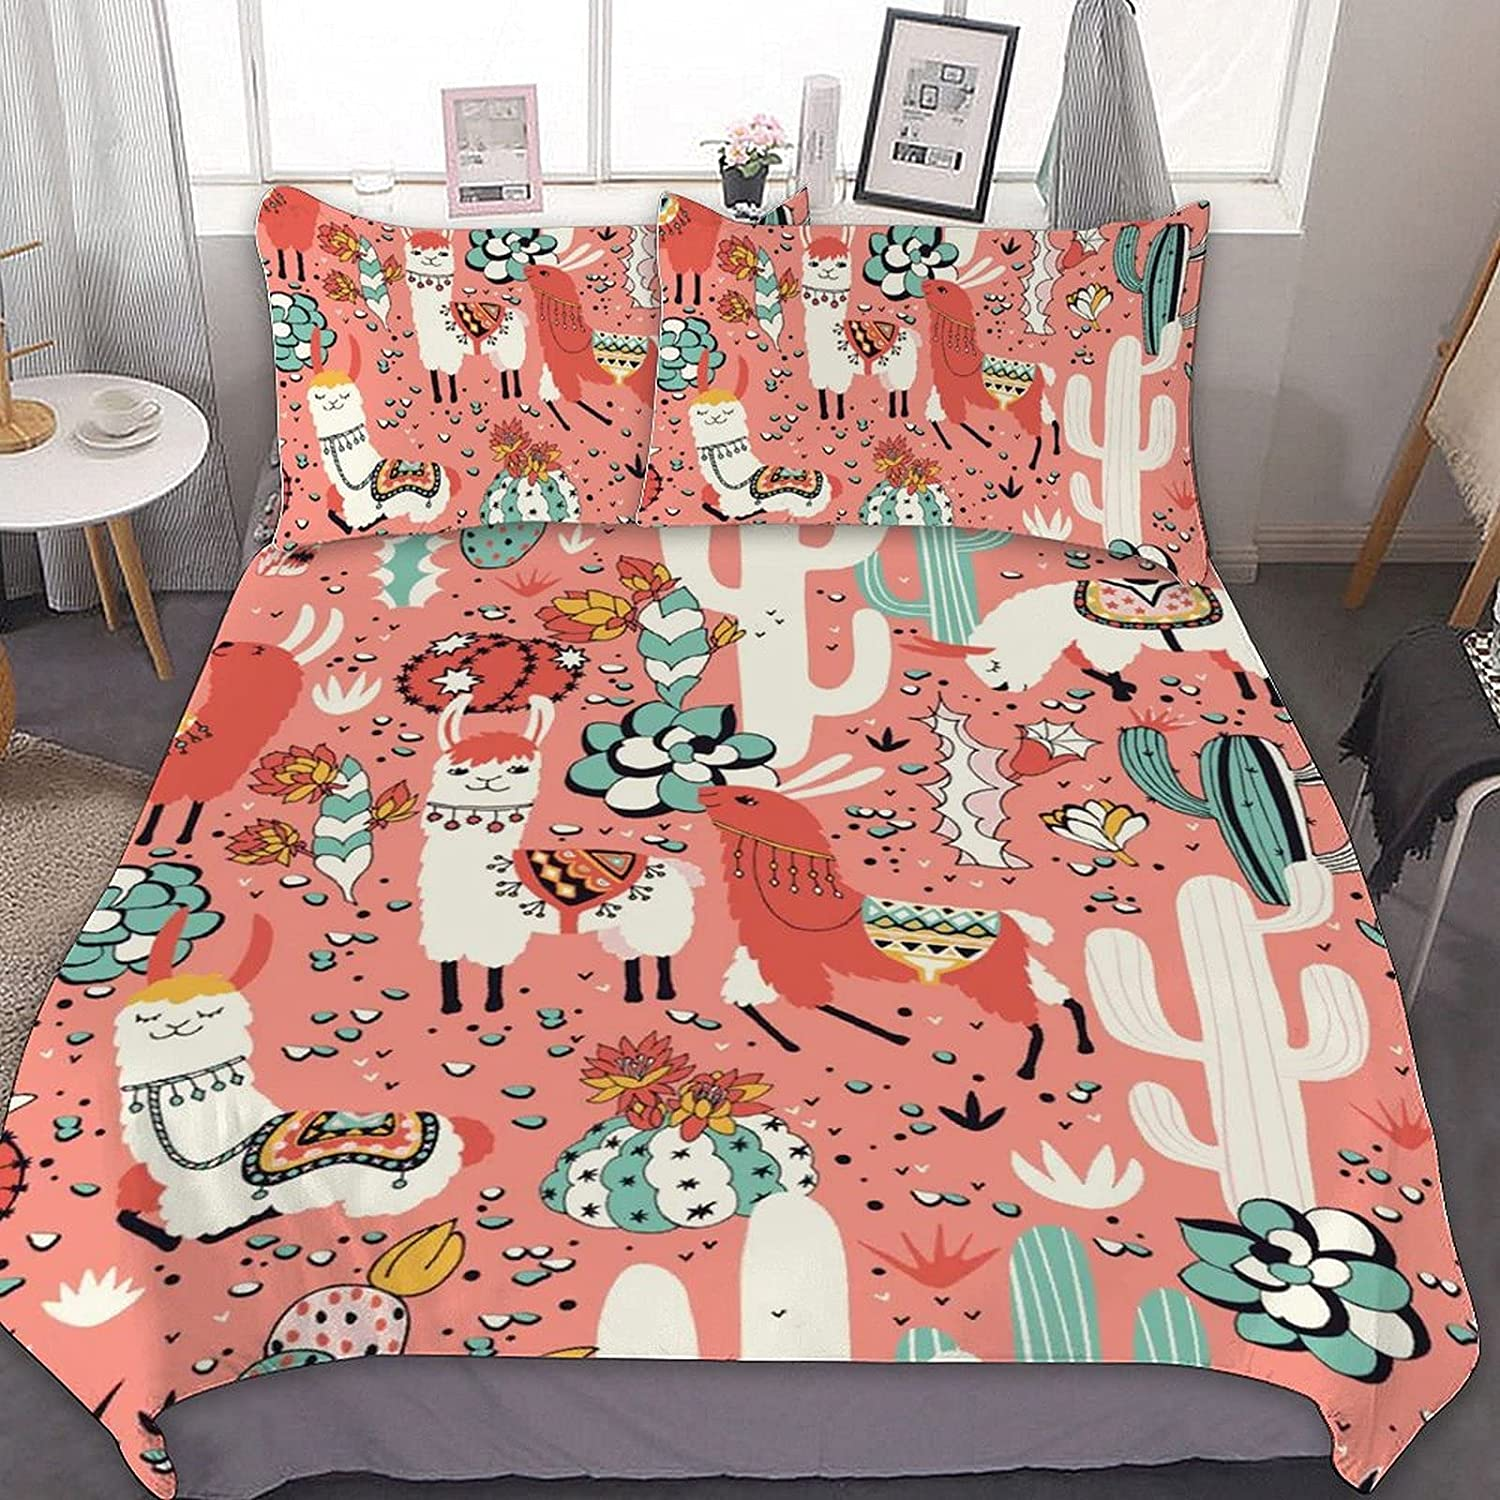 PNNUO Lama in Cactus Jungles Queen Genuine Free Shipping Bed Size King Set Full Twin C Super-cheap